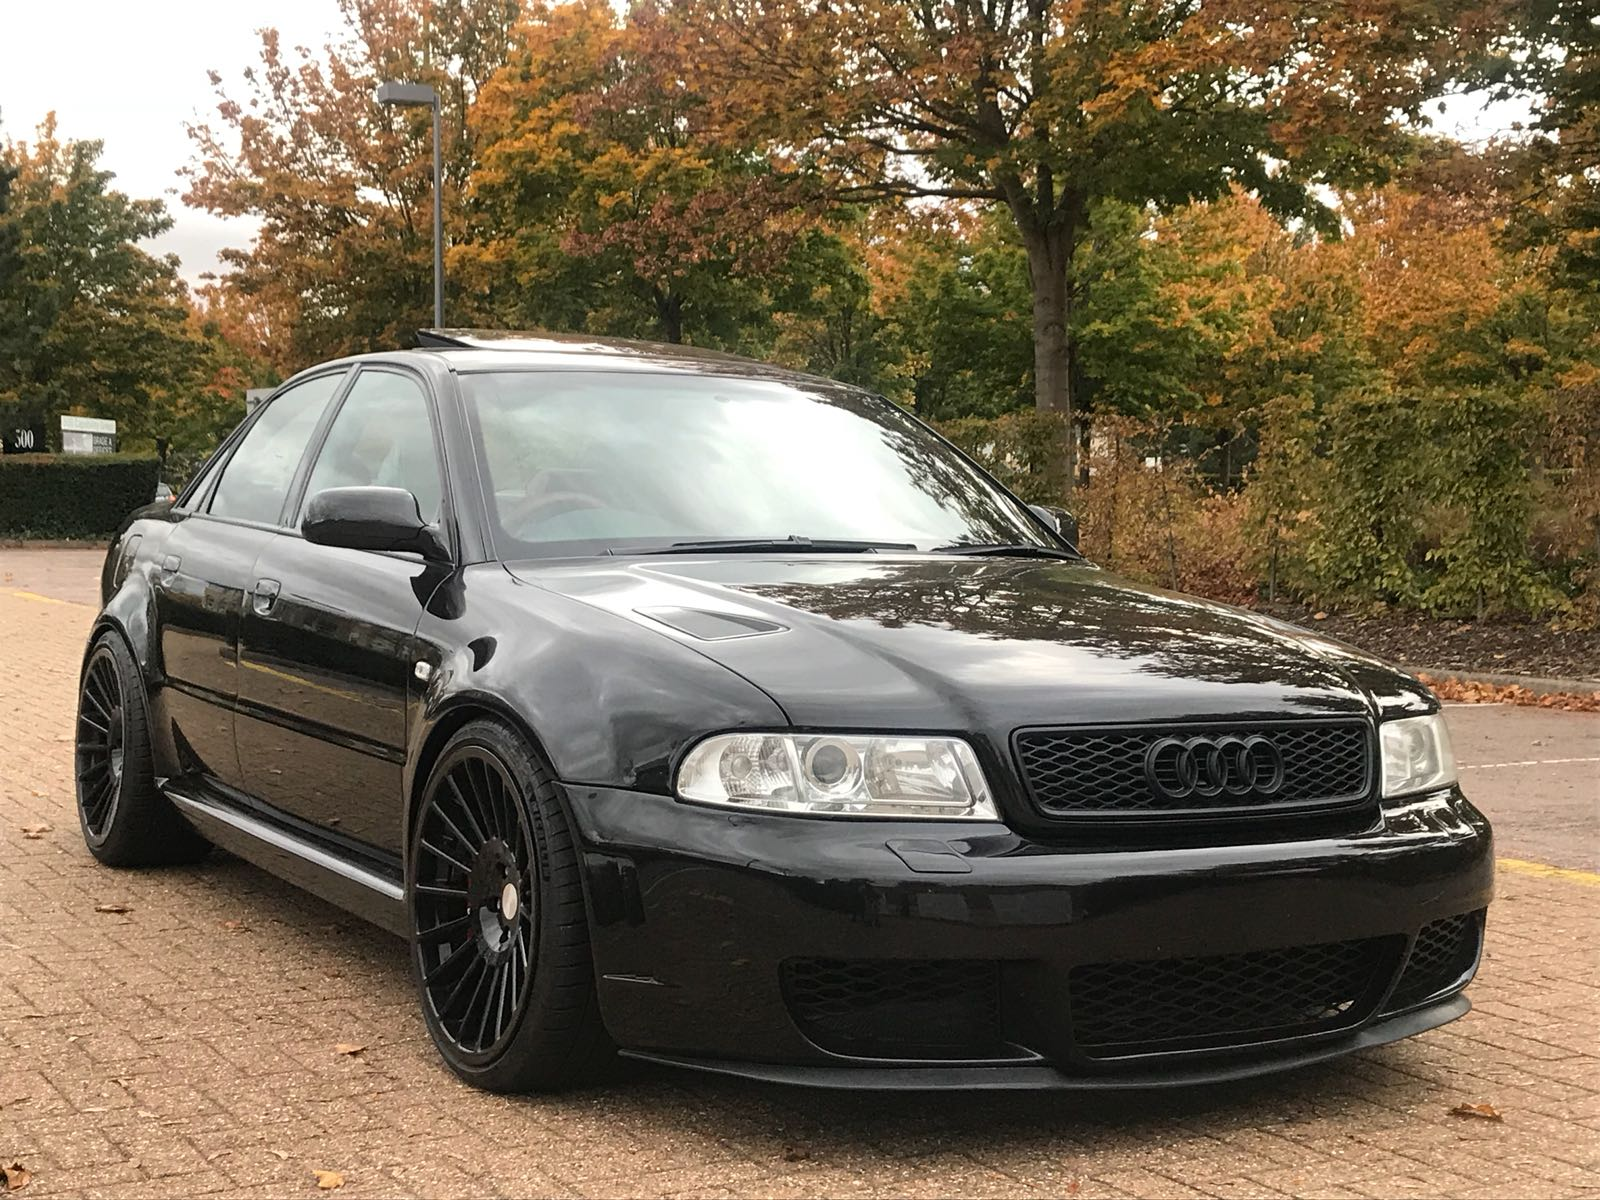 Audi Rs3 2018 >> For Sale - AUDI B5 S4 RS4 WIDEBODY CONVERSION (ONE OF THE ...